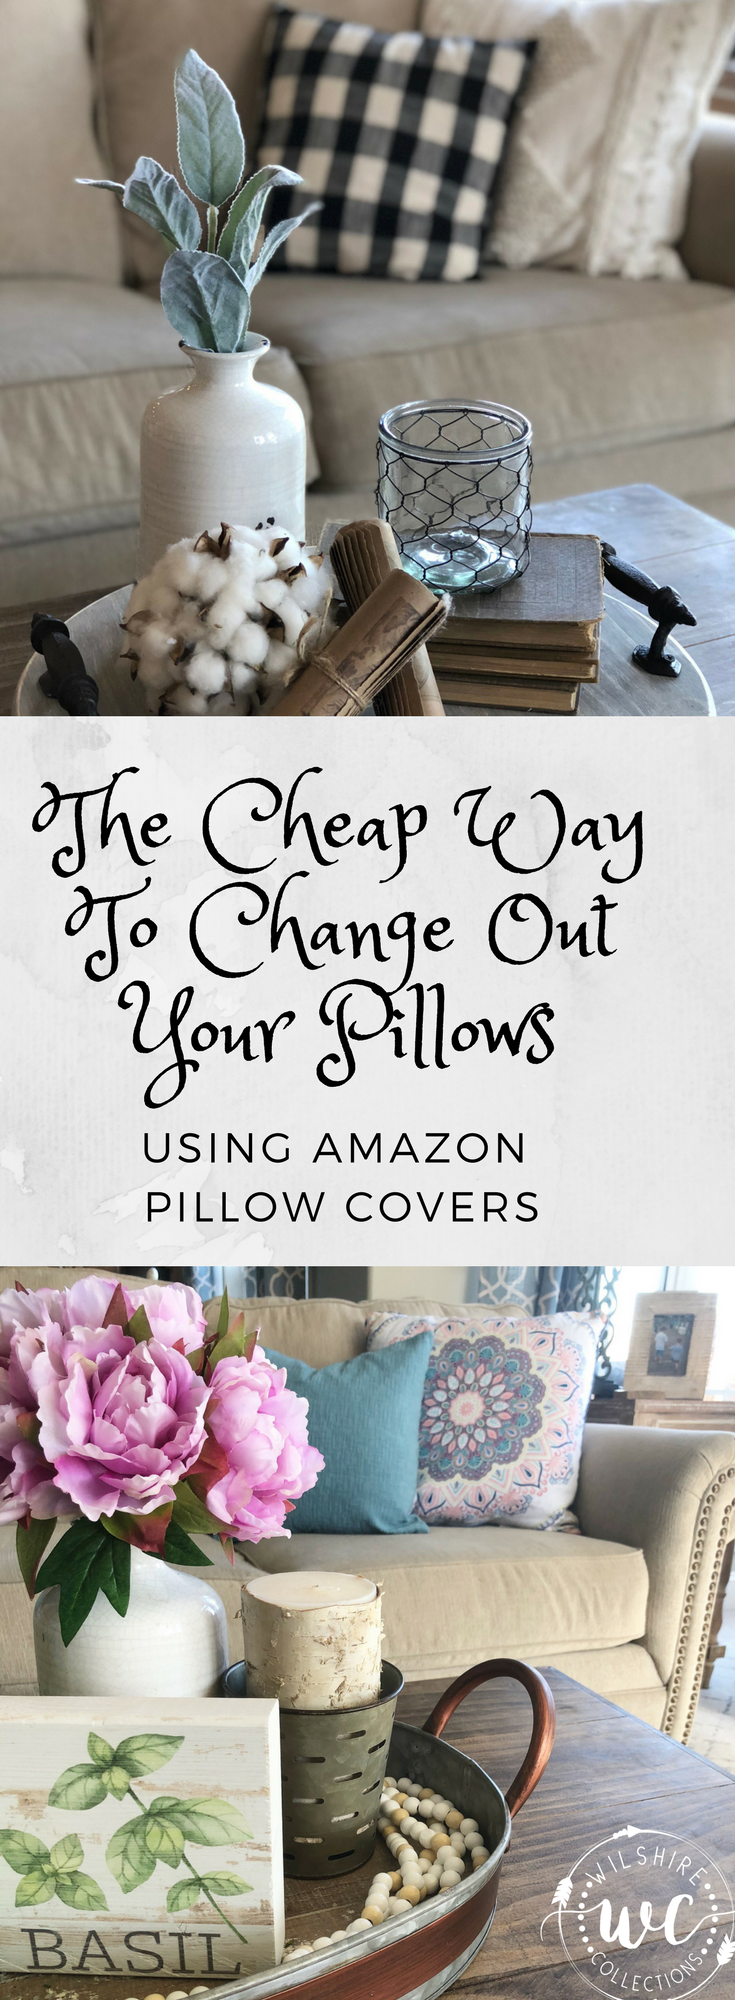 The cheap way to change out your pillows using Amazon pillow covers ...